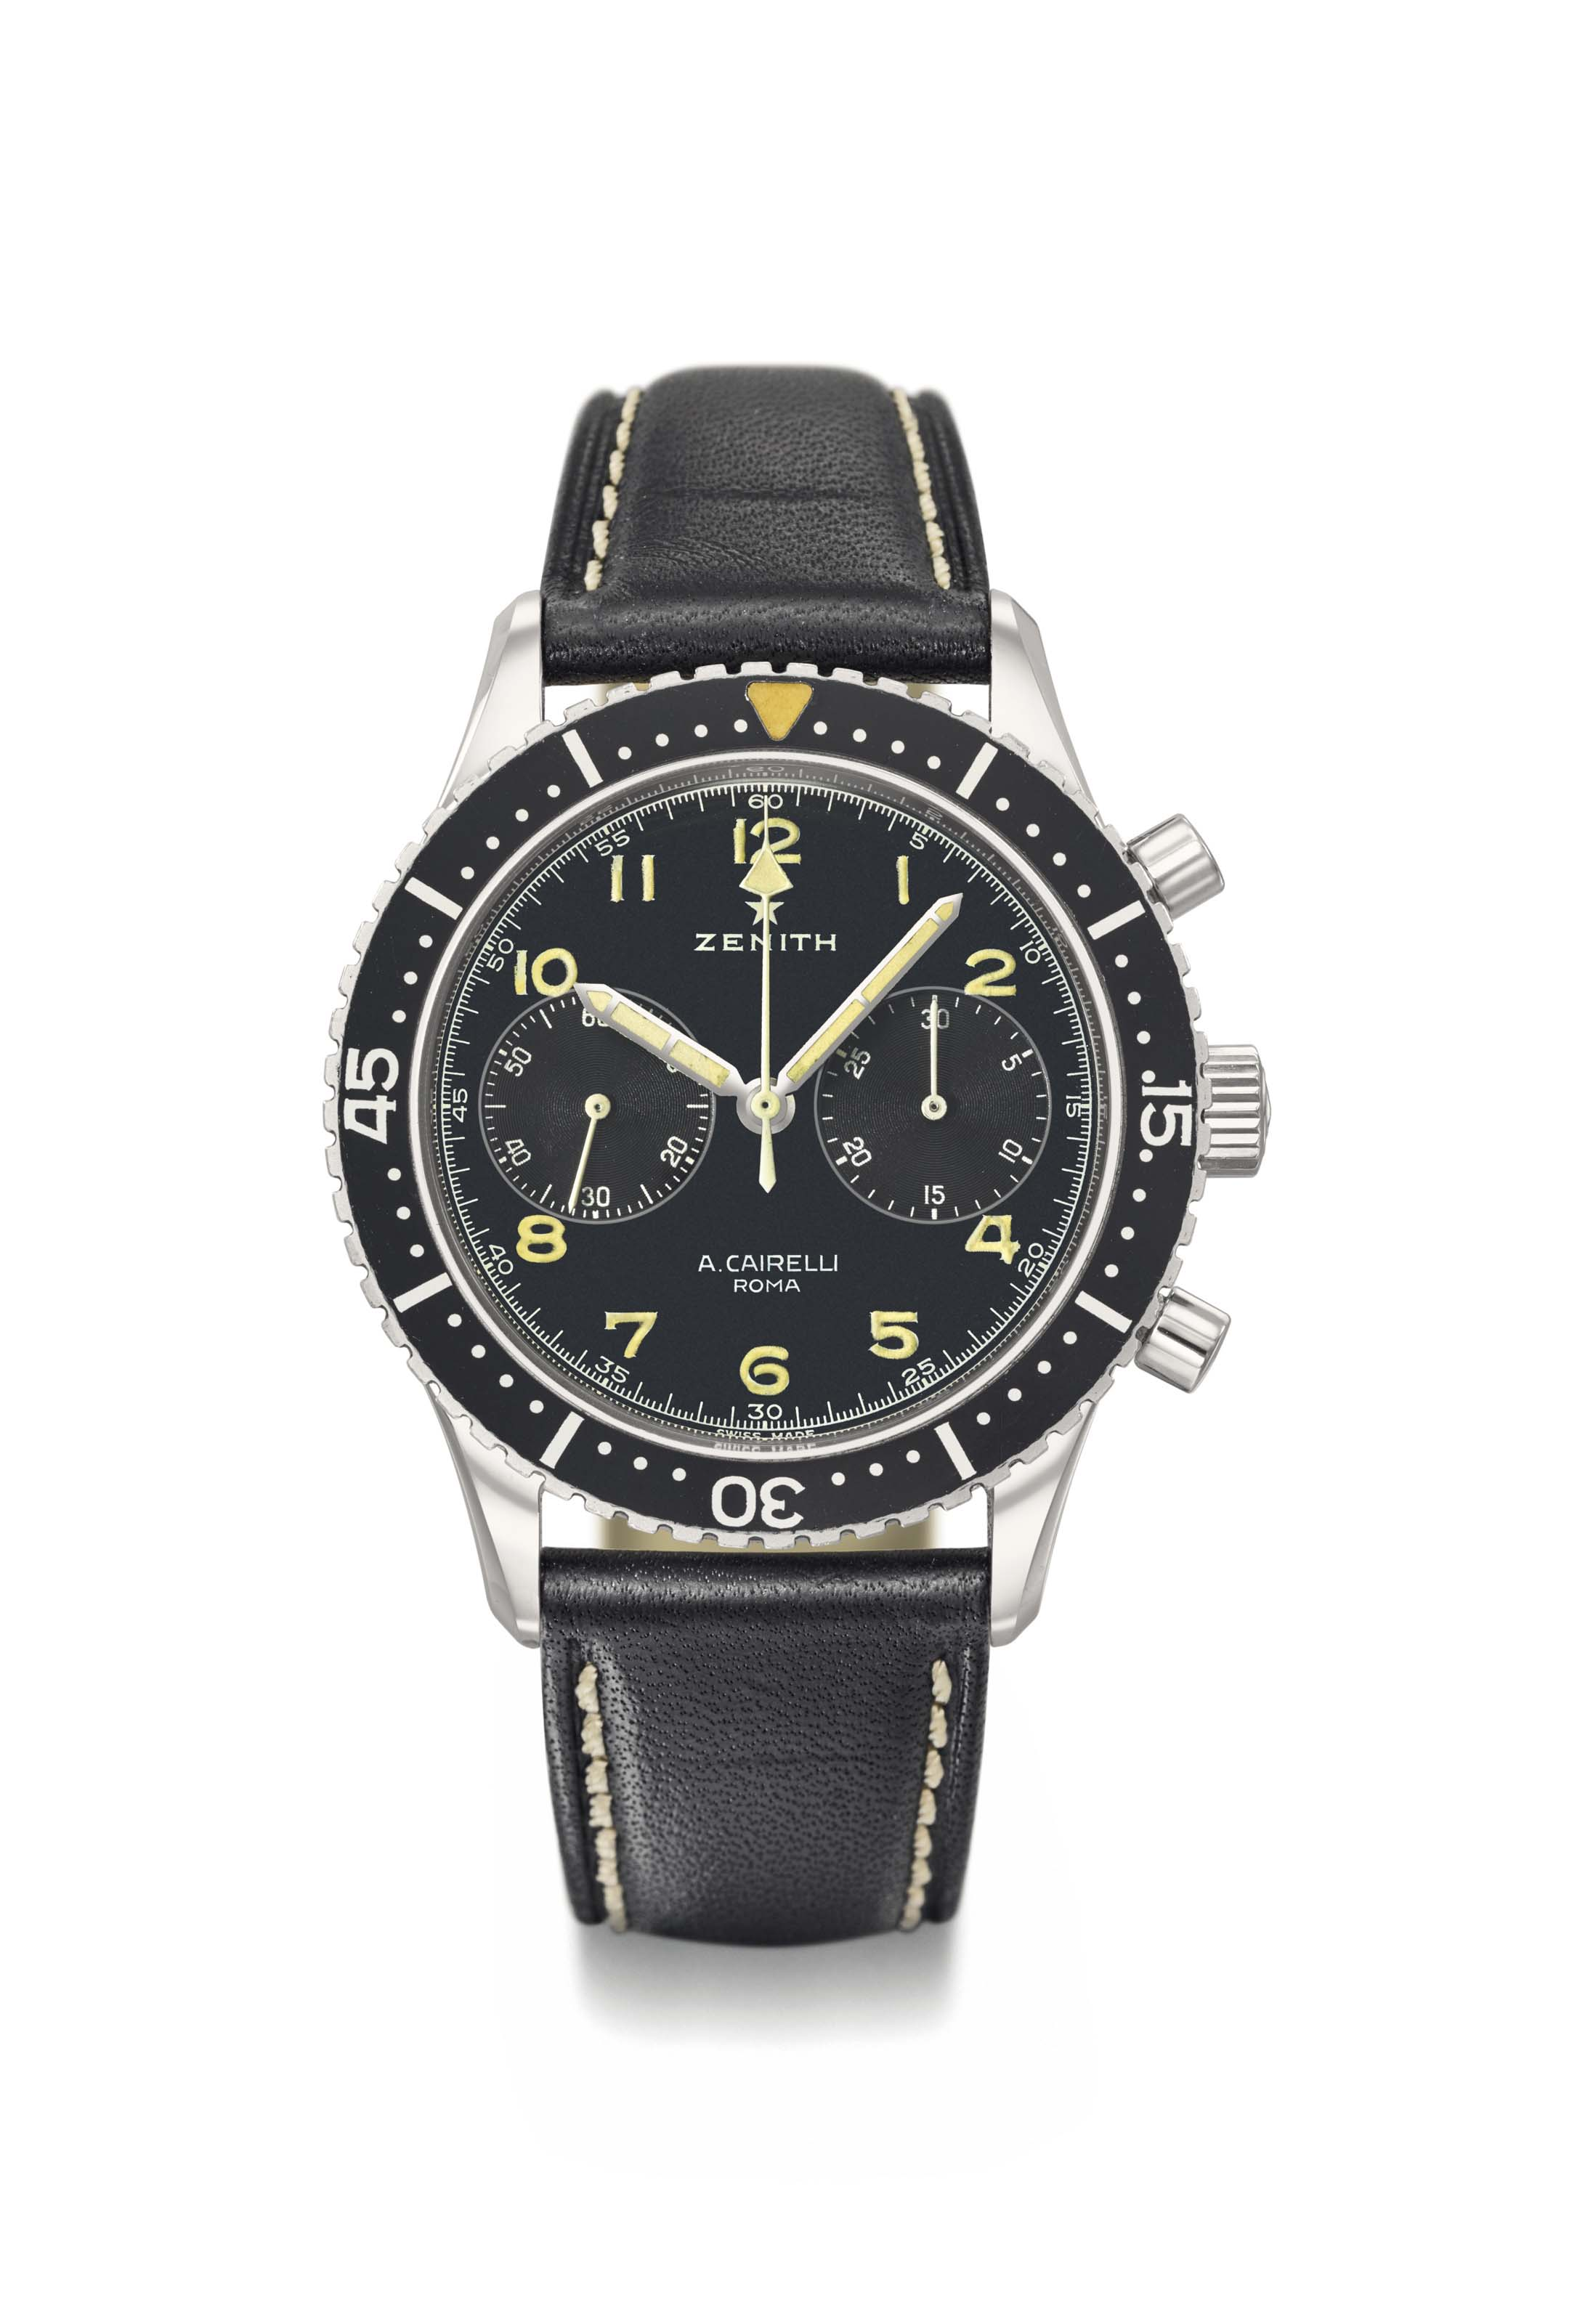 Zenith. A very fine, rare and attractive military chronograph wristwatch with black luminous dial and engraved case back. Made for the Italian Army